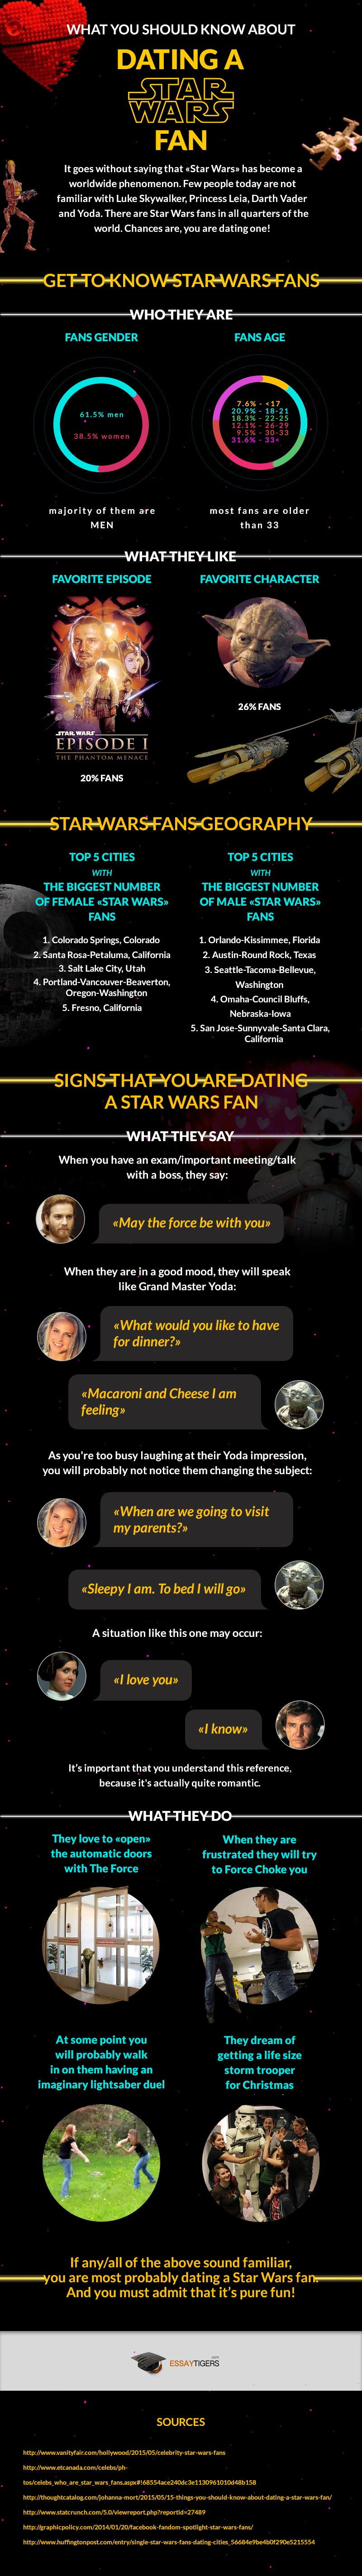 Dating a Star Wars Fan #Infographic